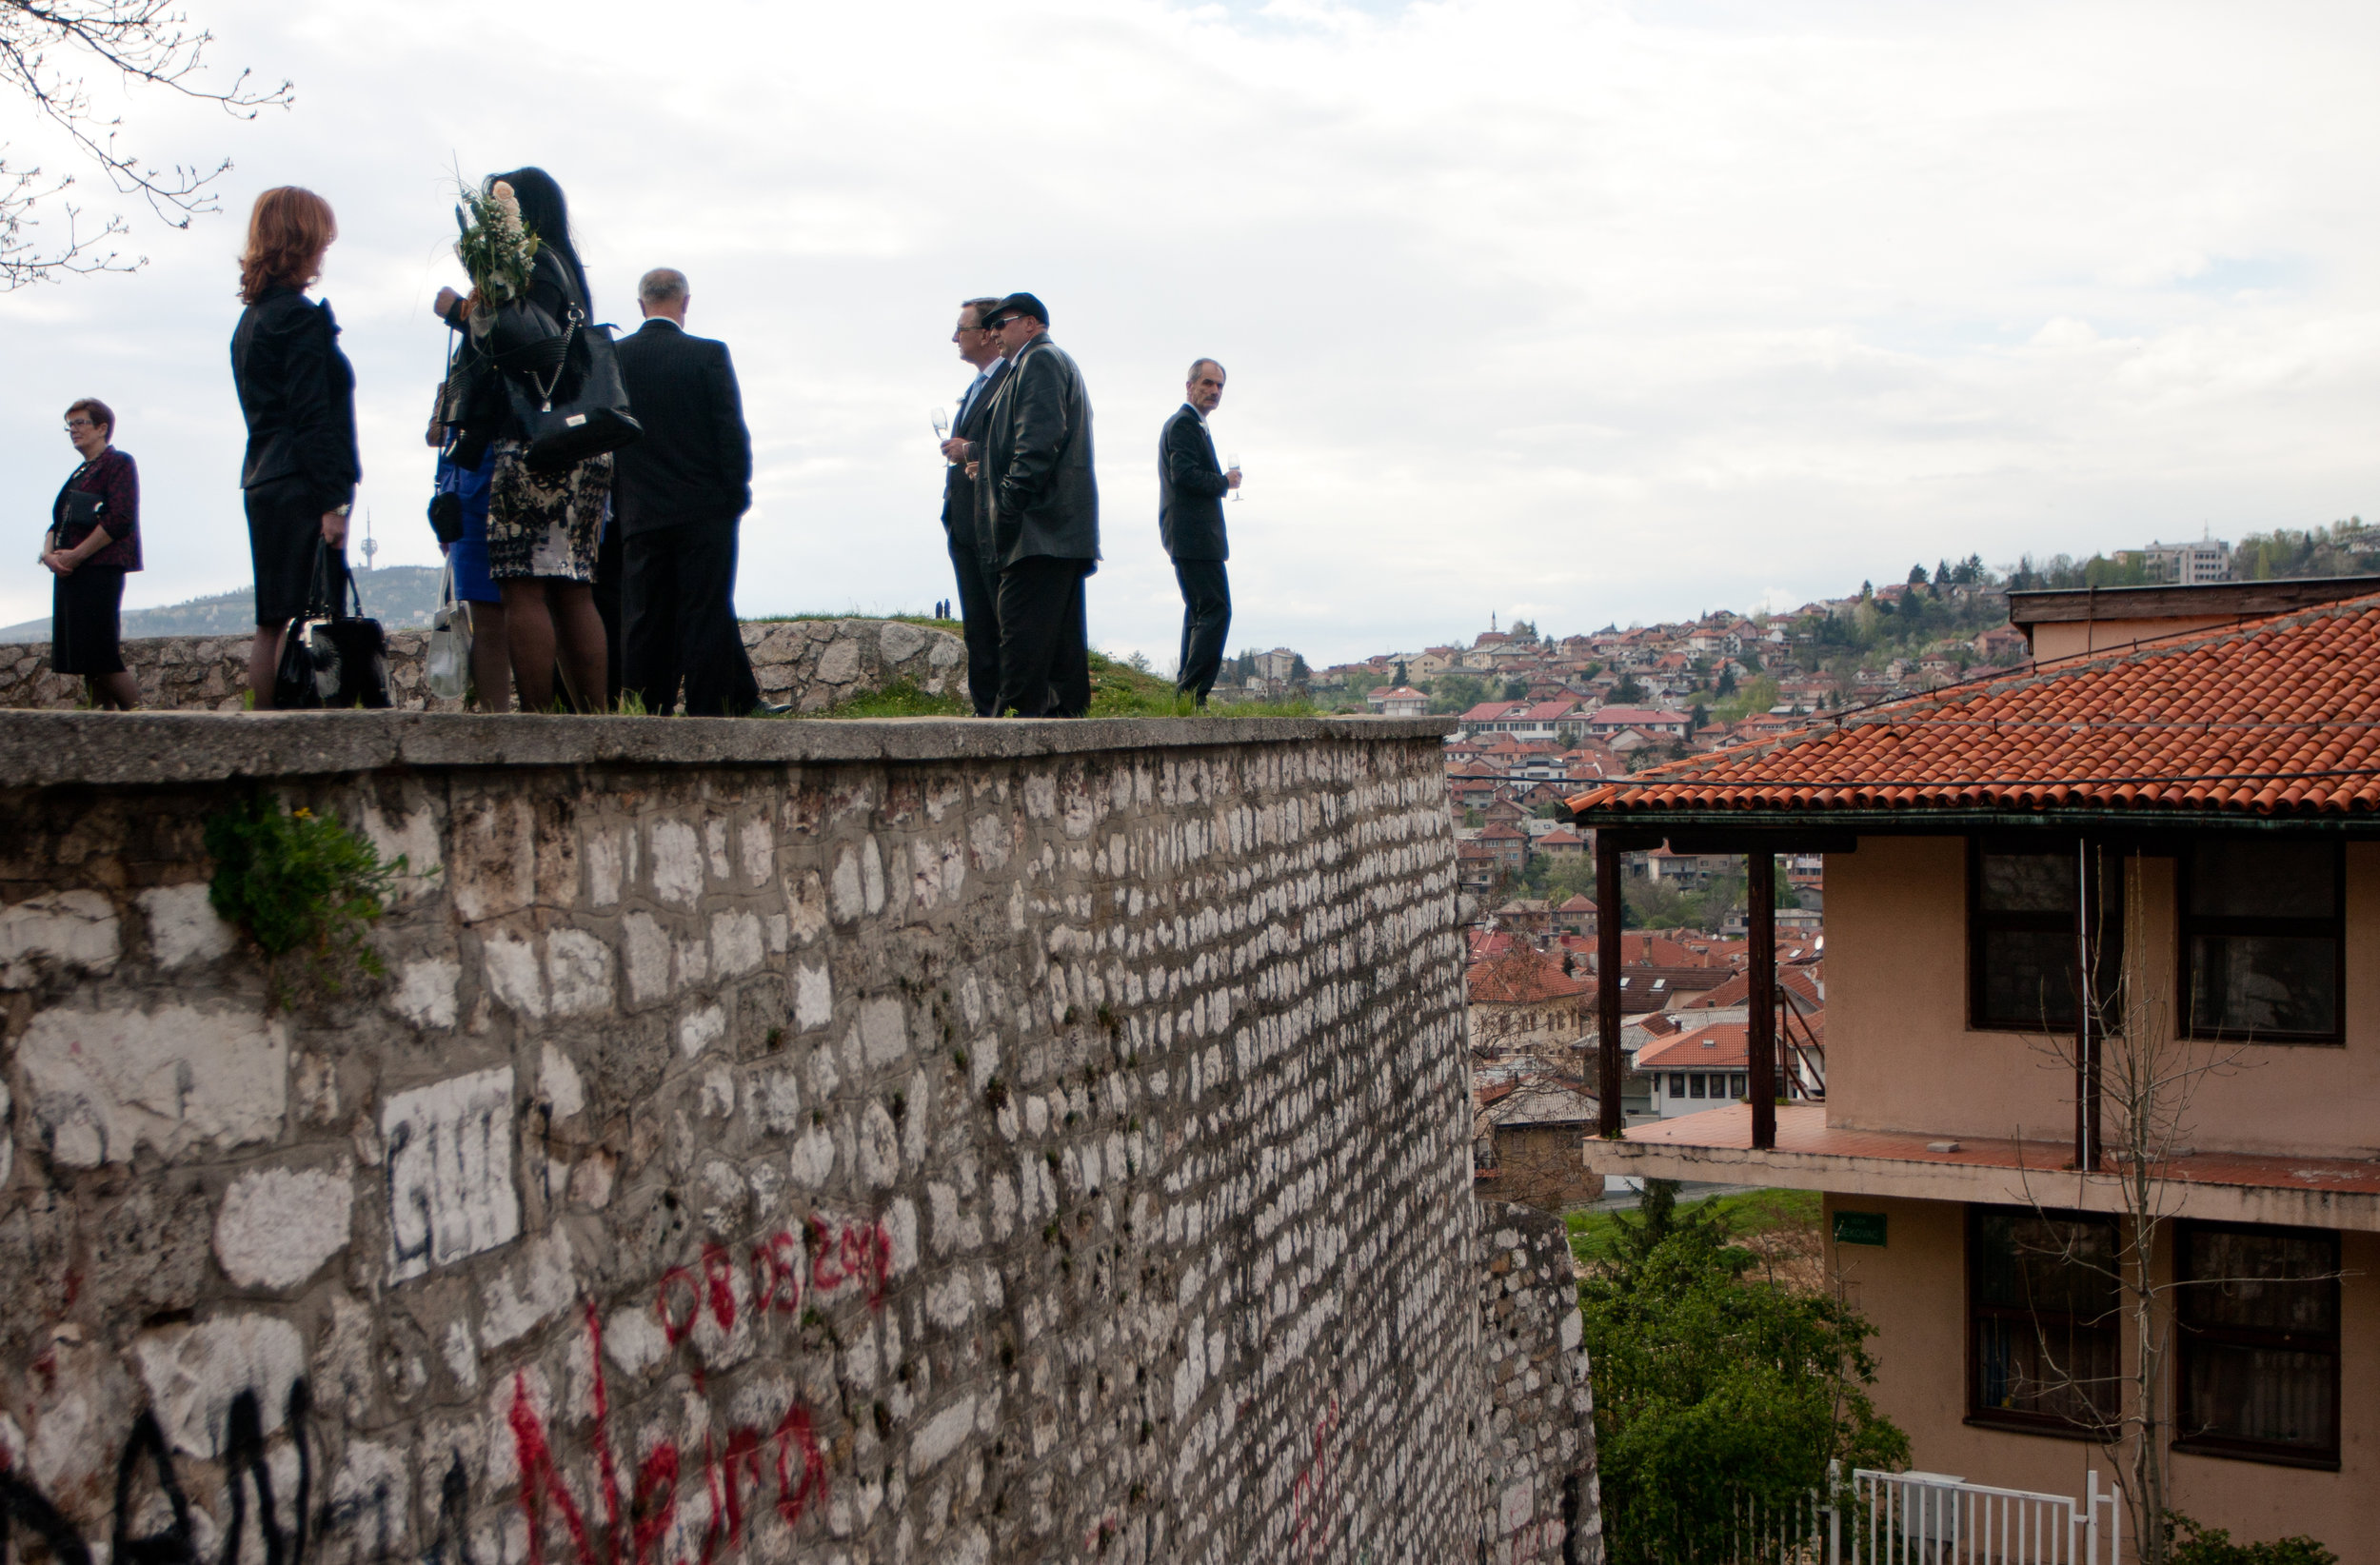 The Heart of Sarajevo is Back - PassBlue.com, December 2014